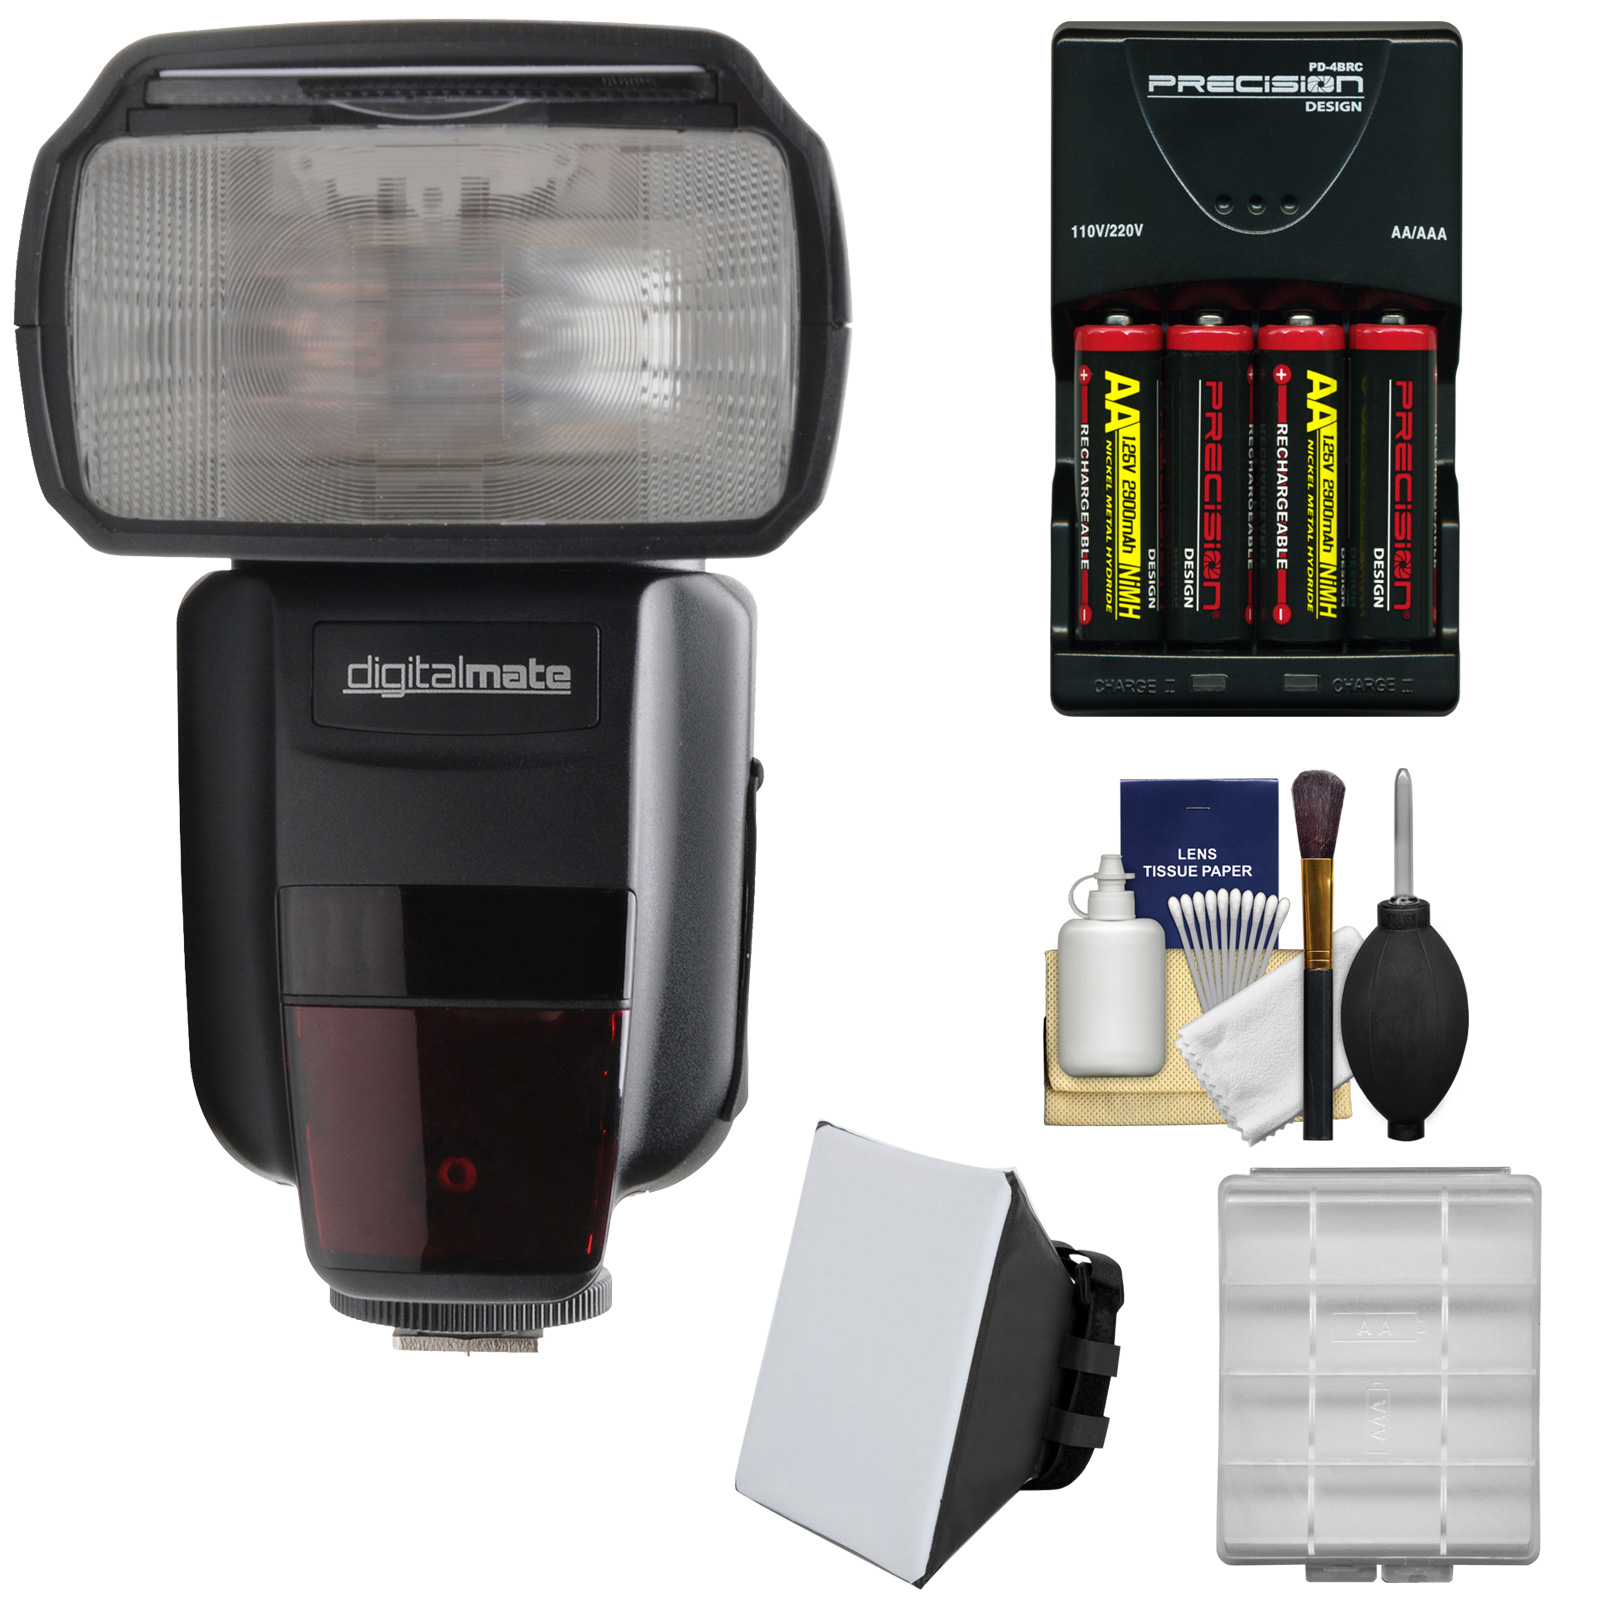 Digitalmate 680 Power Zoom AF I-TTL Flash with LCD Display with Batteries & Charger + Soft Box Kit for Nikon DSLR Cameras